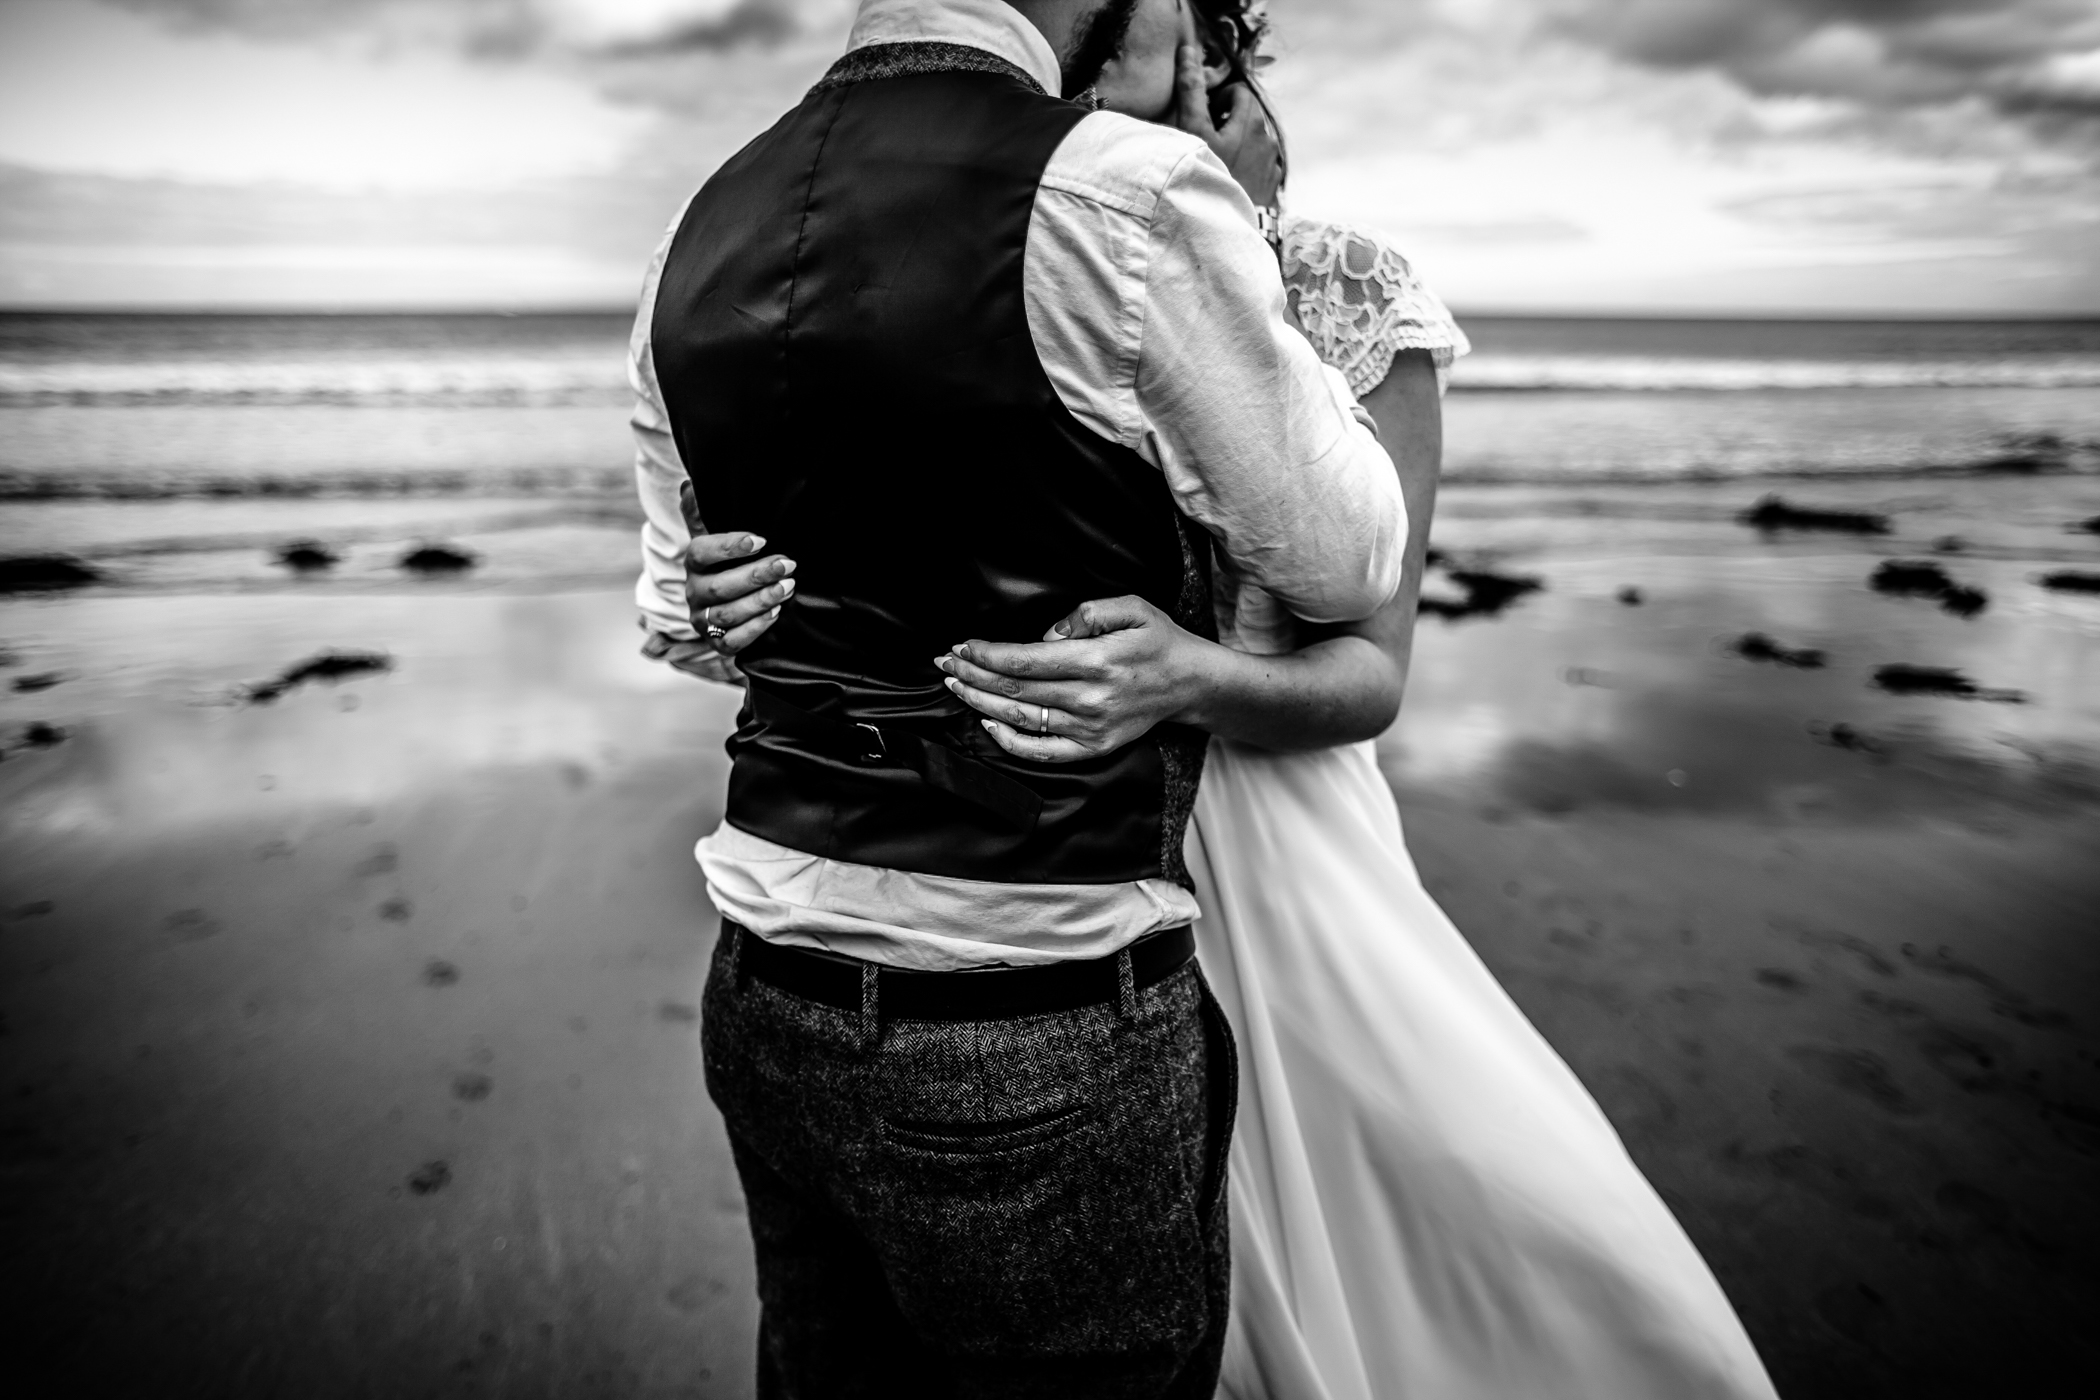 sansom photography beach wedding photography charlotte & mike-21